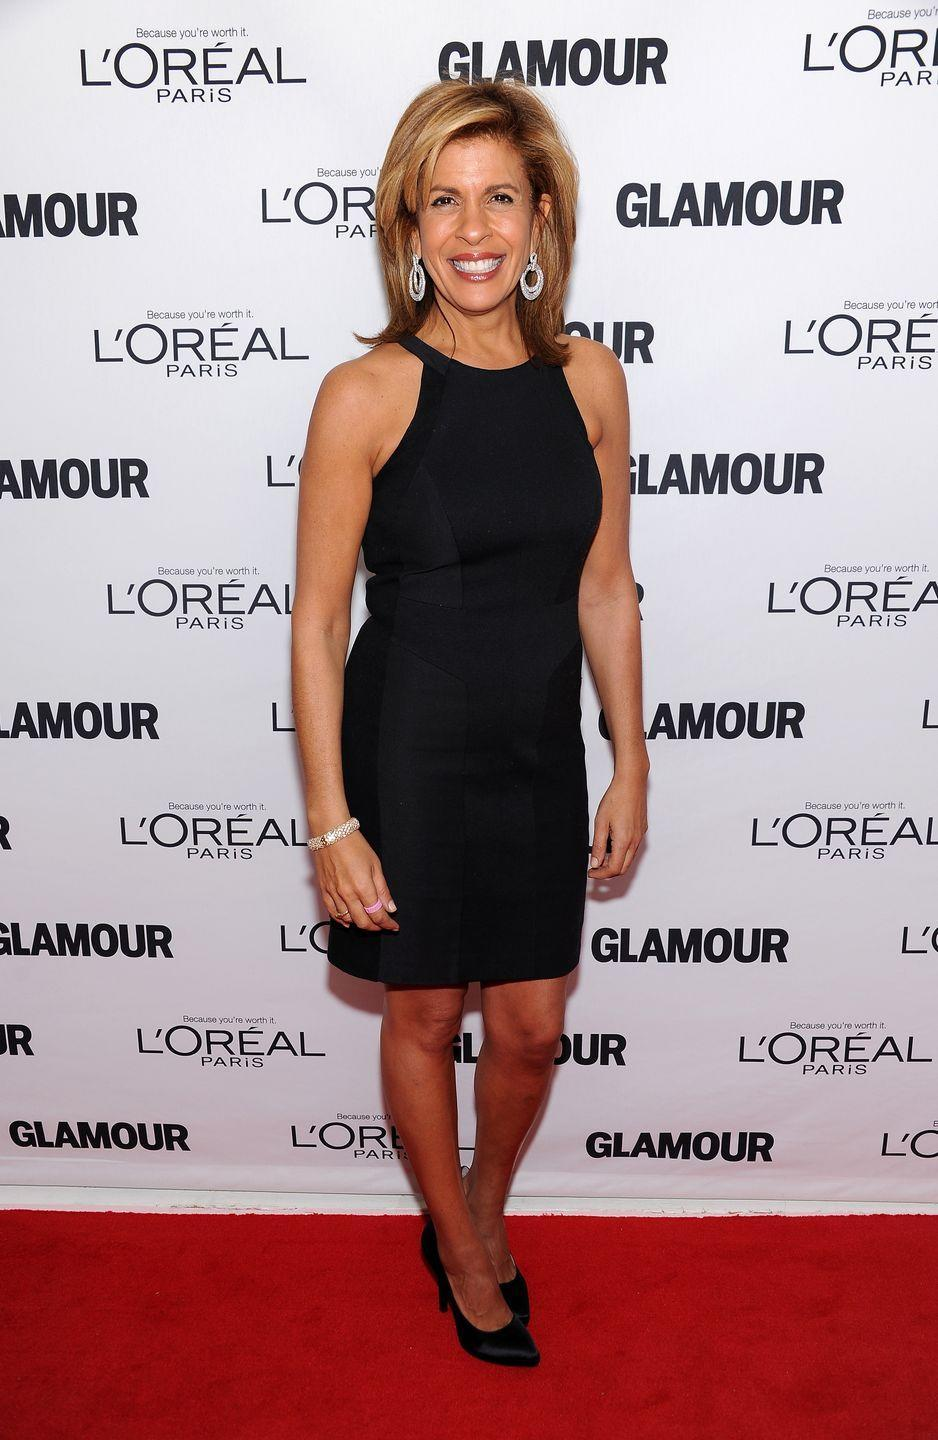 "<p>The <em>Today </em>show cohost is 55 years old, but you wouldn't know it by looking at her slim figure. Even better: The TV personality is a great workout partner, because she brings a ton of energy, <a href=""https://www.womenshealthmag.com/fitness/a28170156/hoda-kotb-bikini-instagram-video/"" rel=""nofollow noopener"" target=""_blank"" data-ylk=""slk:says her trainer, Chris Finn"" class=""link rapid-noclick-resp"">says her trainer, Chris Finn</a>. Hoda's also been open in the past when going through an exercise or diet rut, including when she went on J.Lo's crazy hard <a href=""https://www.womenshealthmag.com/weight-loss/a26131609/jennifer-lopez-hoda-kotb-10-day-challenge-ends/"" rel=""nofollow noopener"" target=""_blank"" data-ylk=""slk:10-day no-carb challenge"" class=""link rapid-noclick-resp"">10-day no-carb challenge</a> just to see if she could.</p>"